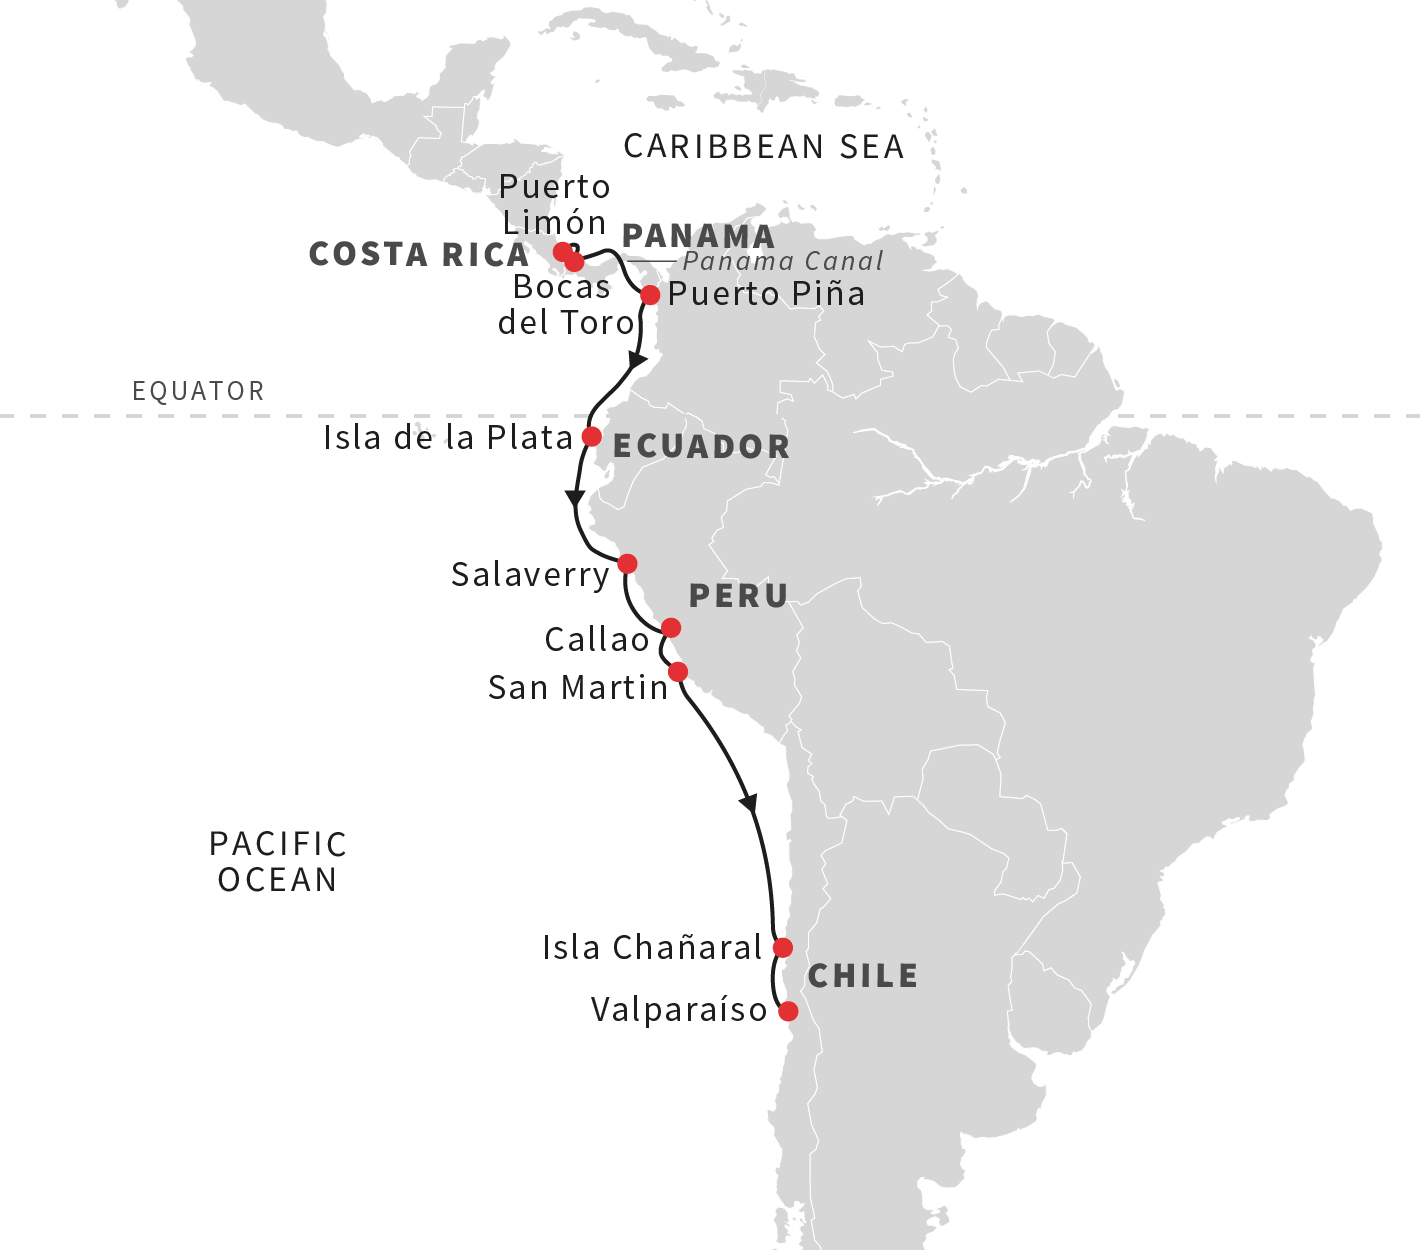 South america cruise expedition to panama canal from costa rica sail through the panama canal see the nazca lines the ancient chimu kingdom pyramids and shrines national parks and exotic wildlife before ending the gumiabroncs Choice Image